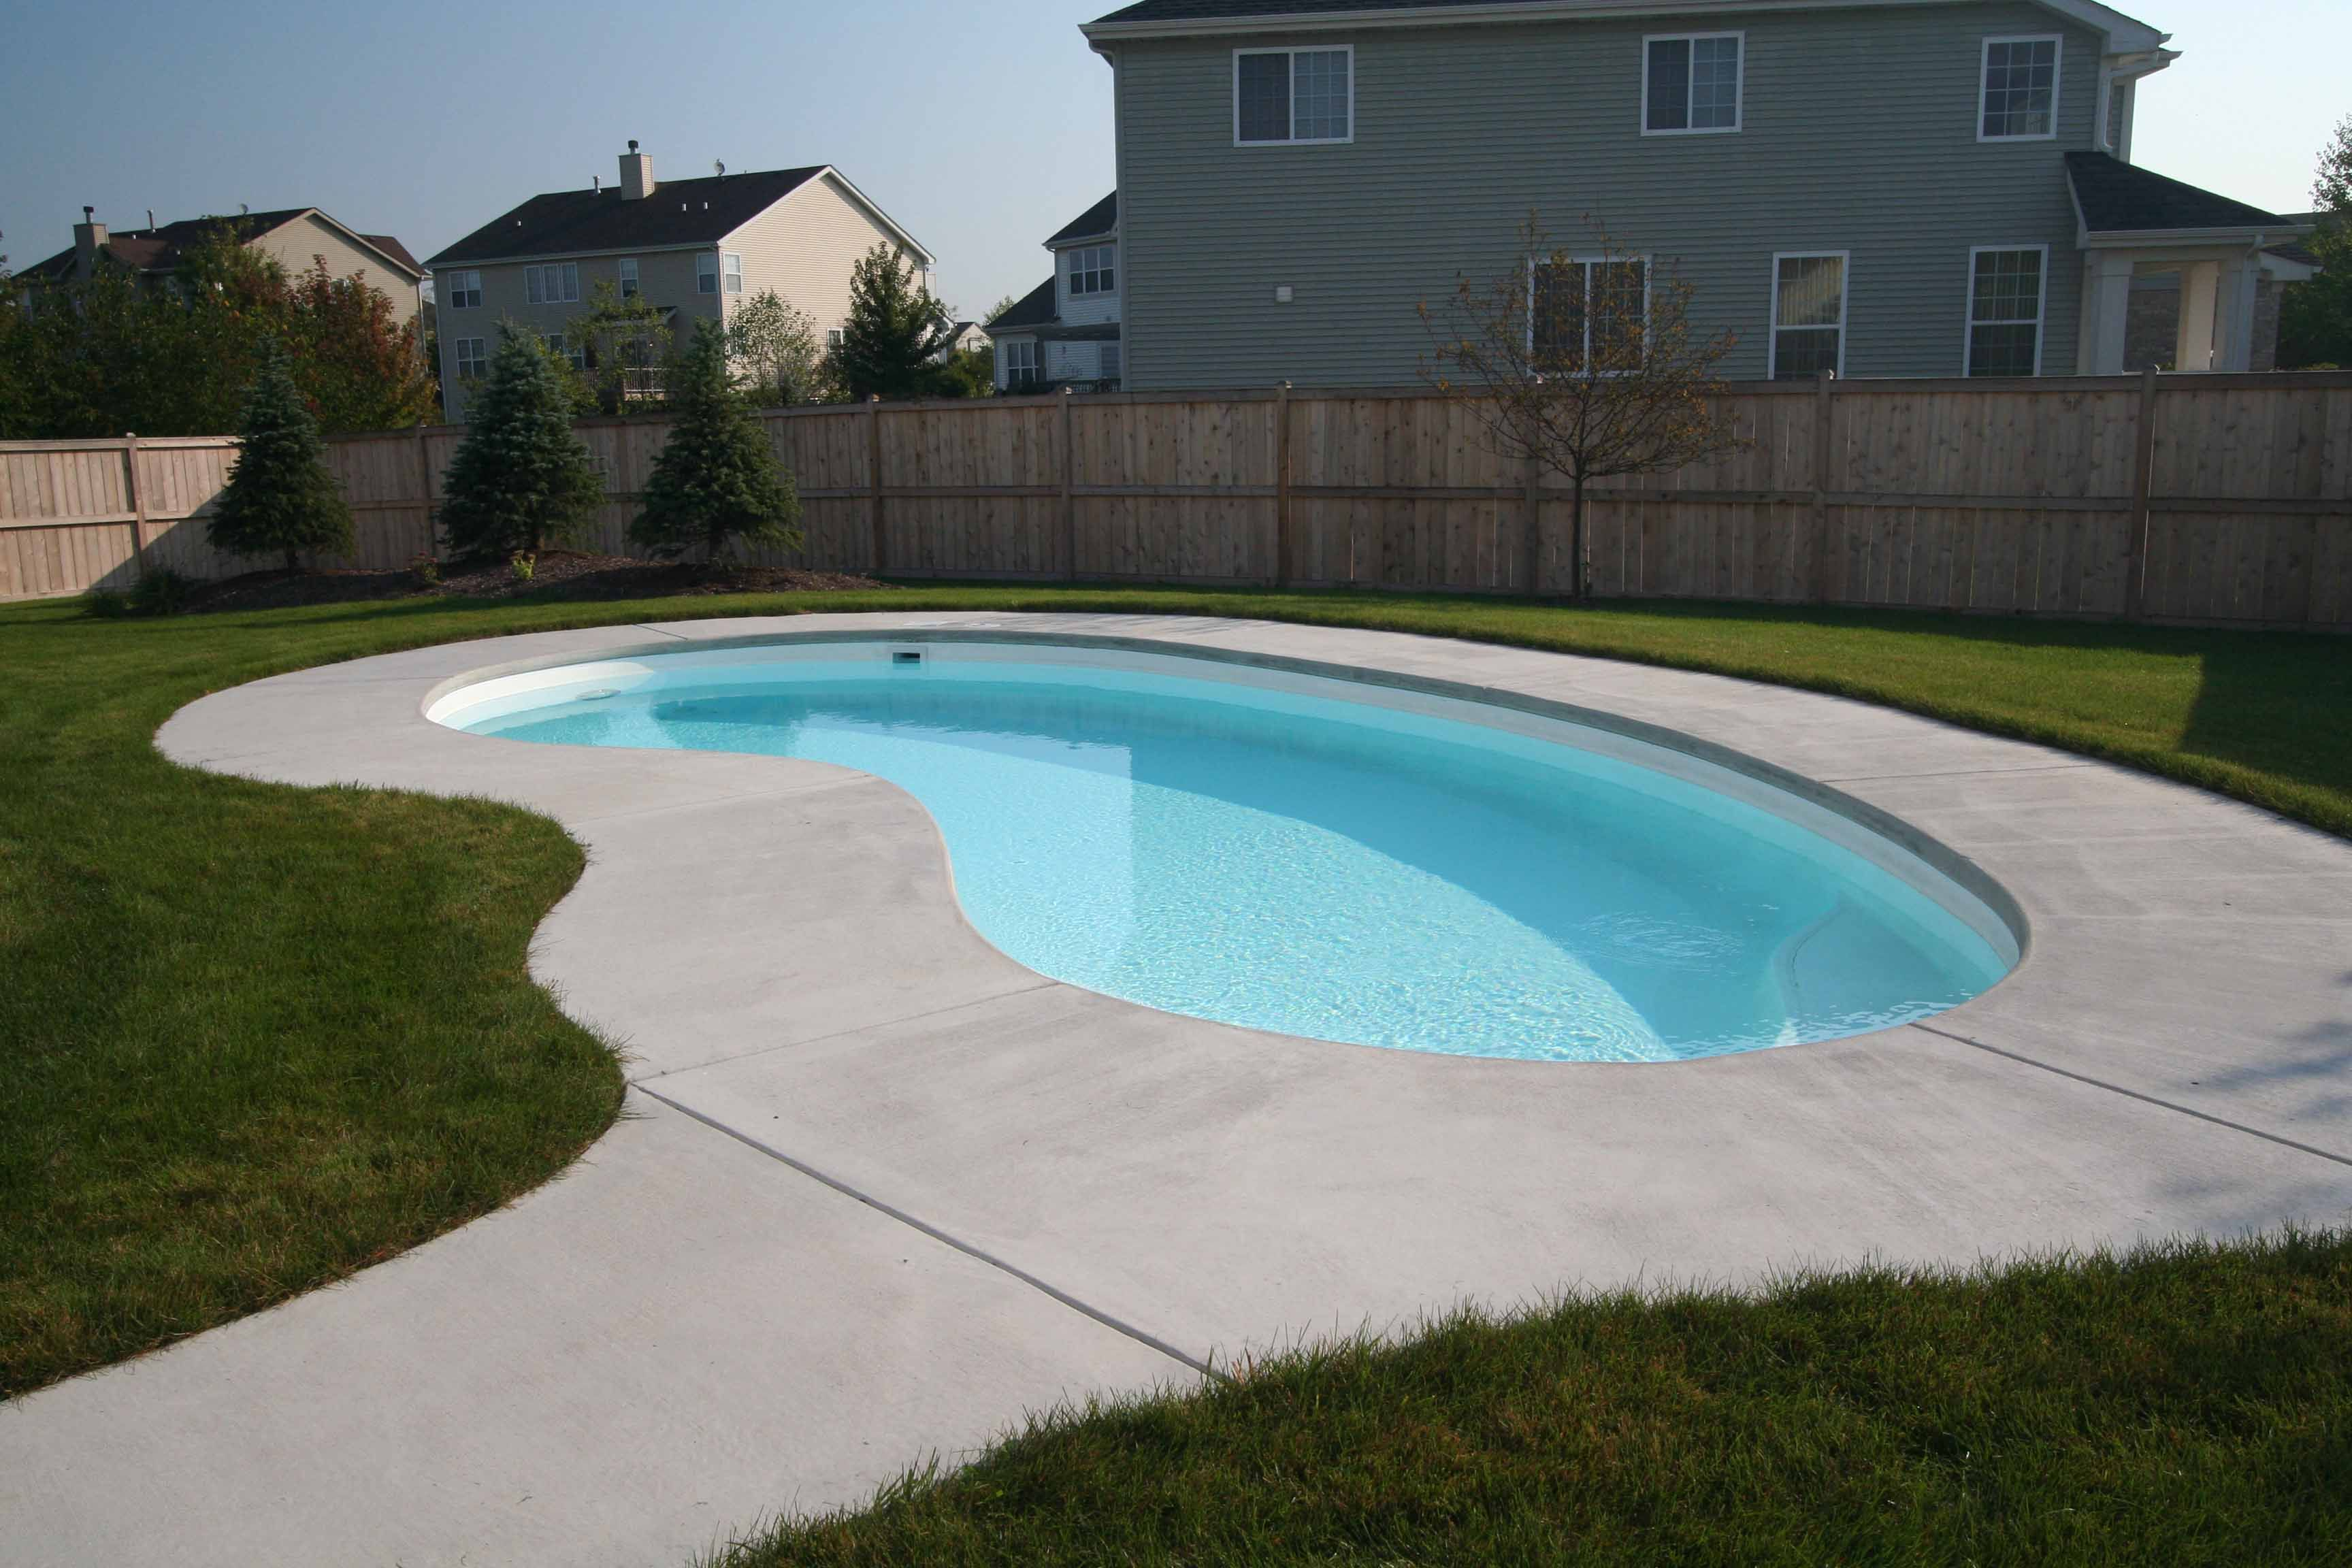 It s hard to believe a pool this large could be a fiberglass shell